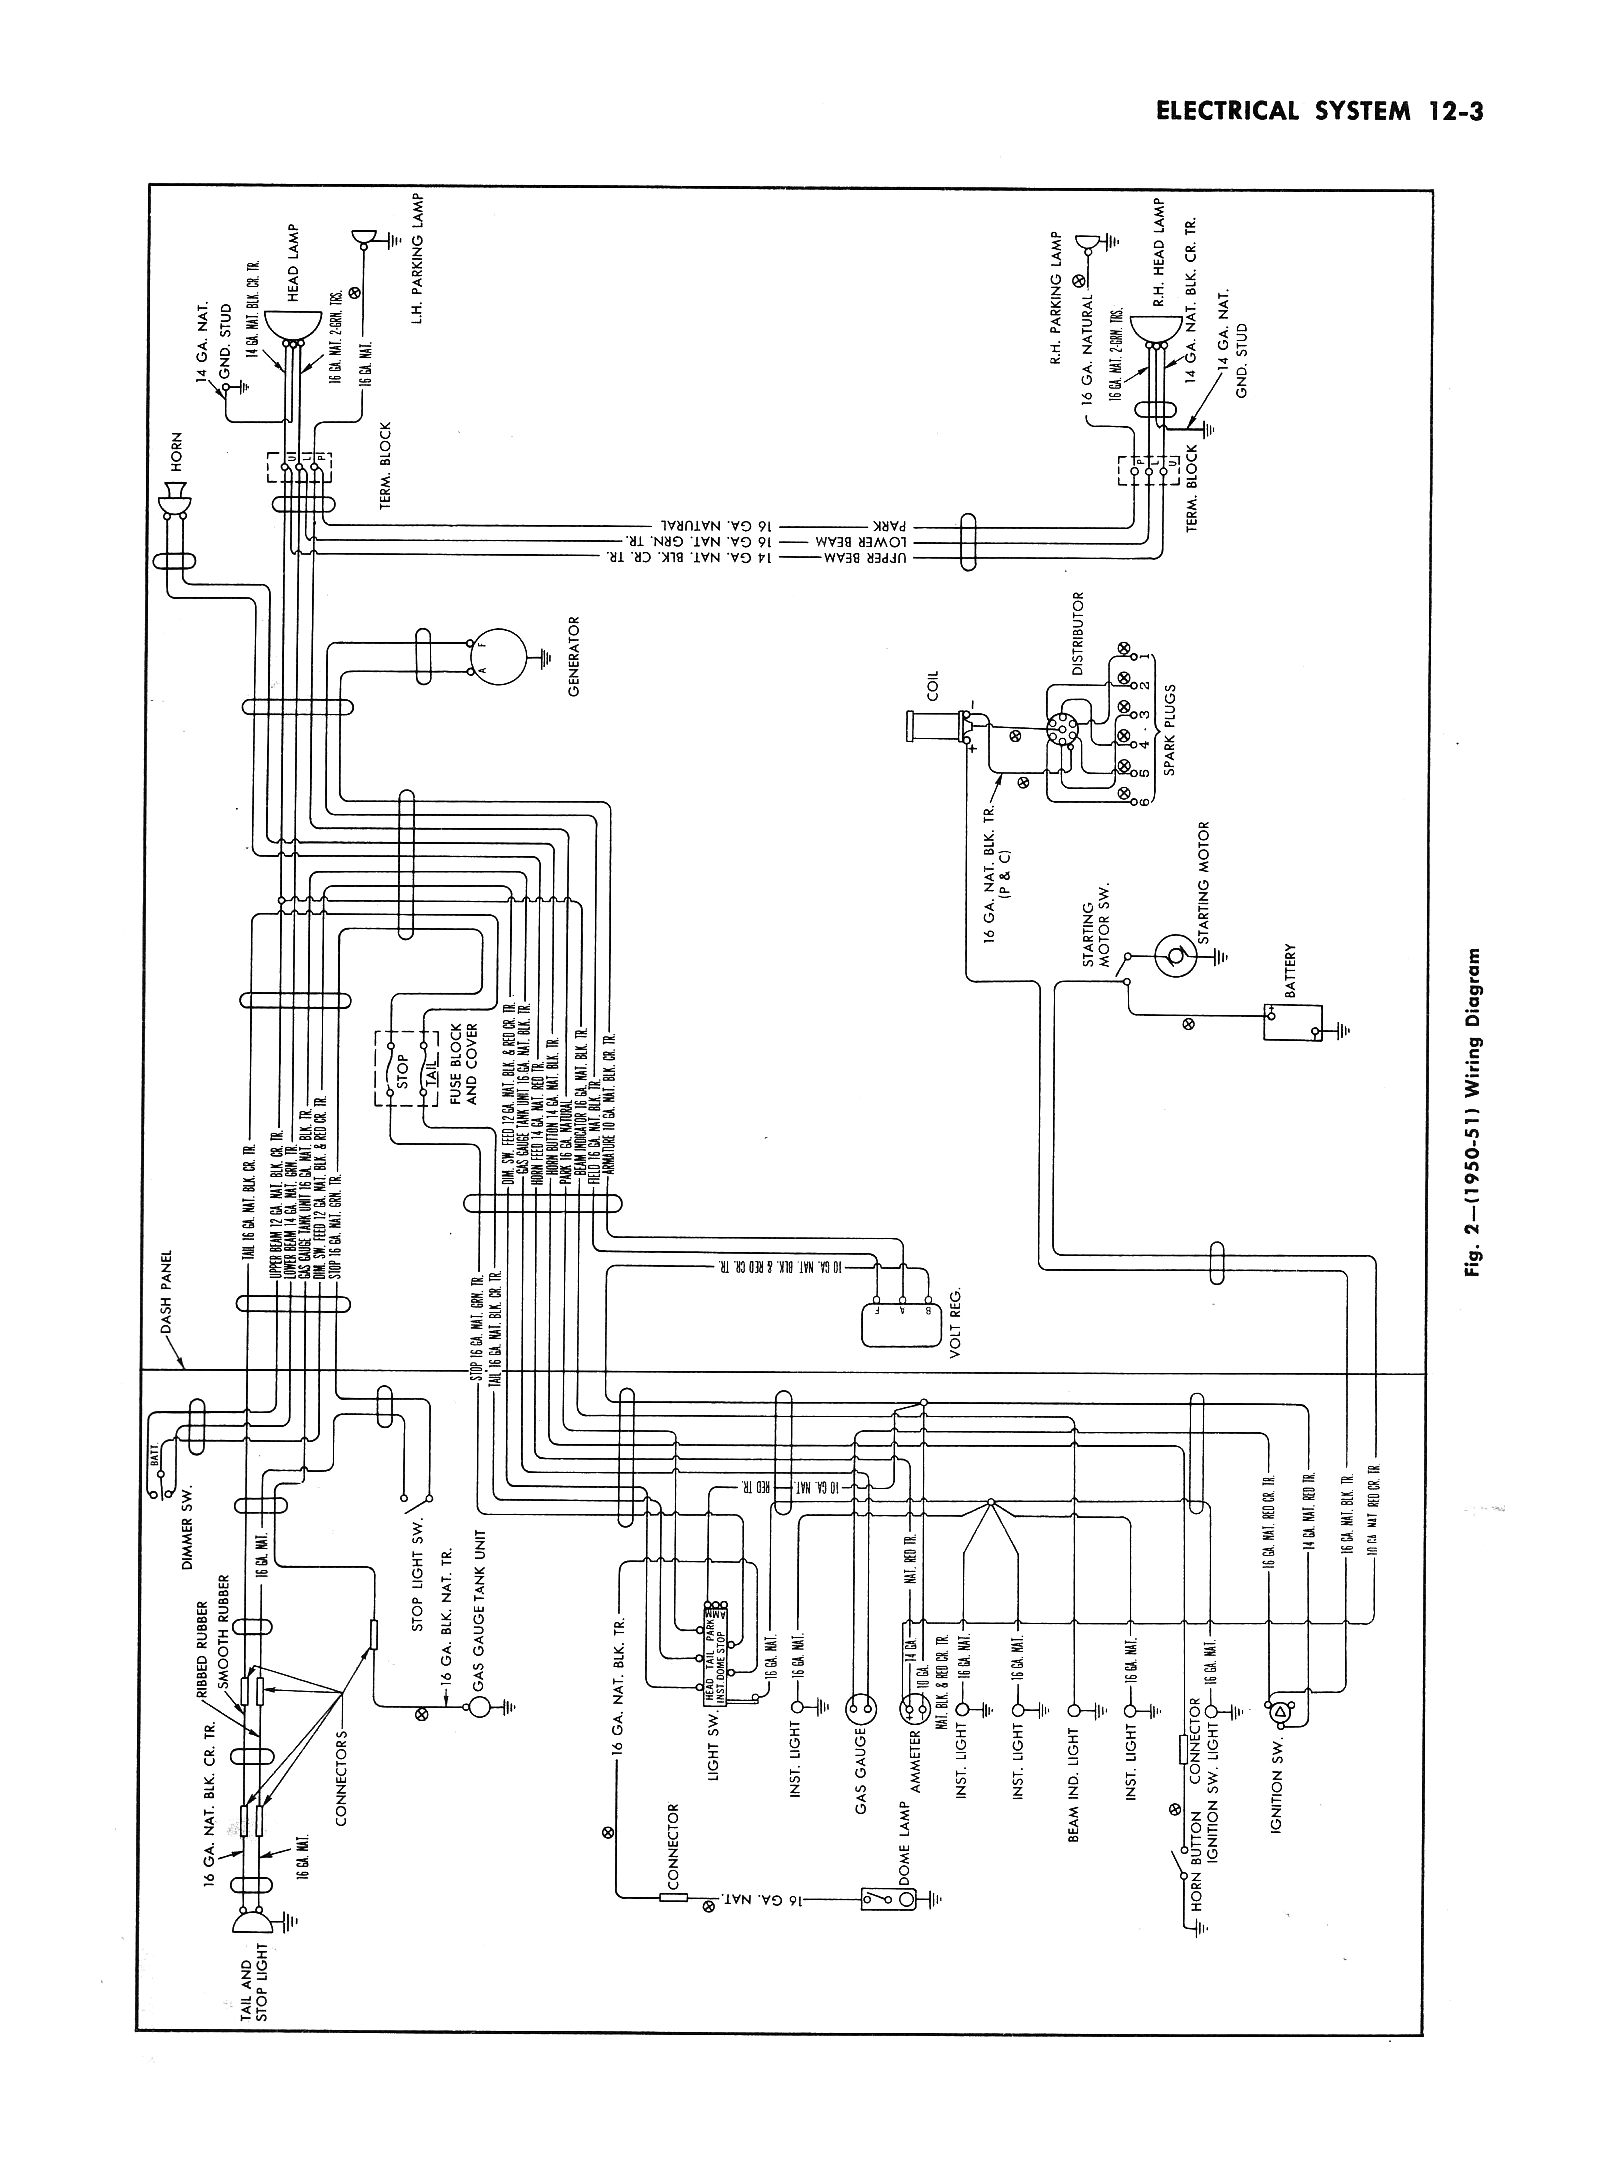 1948 Chevy Truck Wiring Diagram Content Resource Of Wiring Diagram \u2022  2006 Silverado Light Wiring Diagram 1959 Chevy Pickup Wiring Diagram